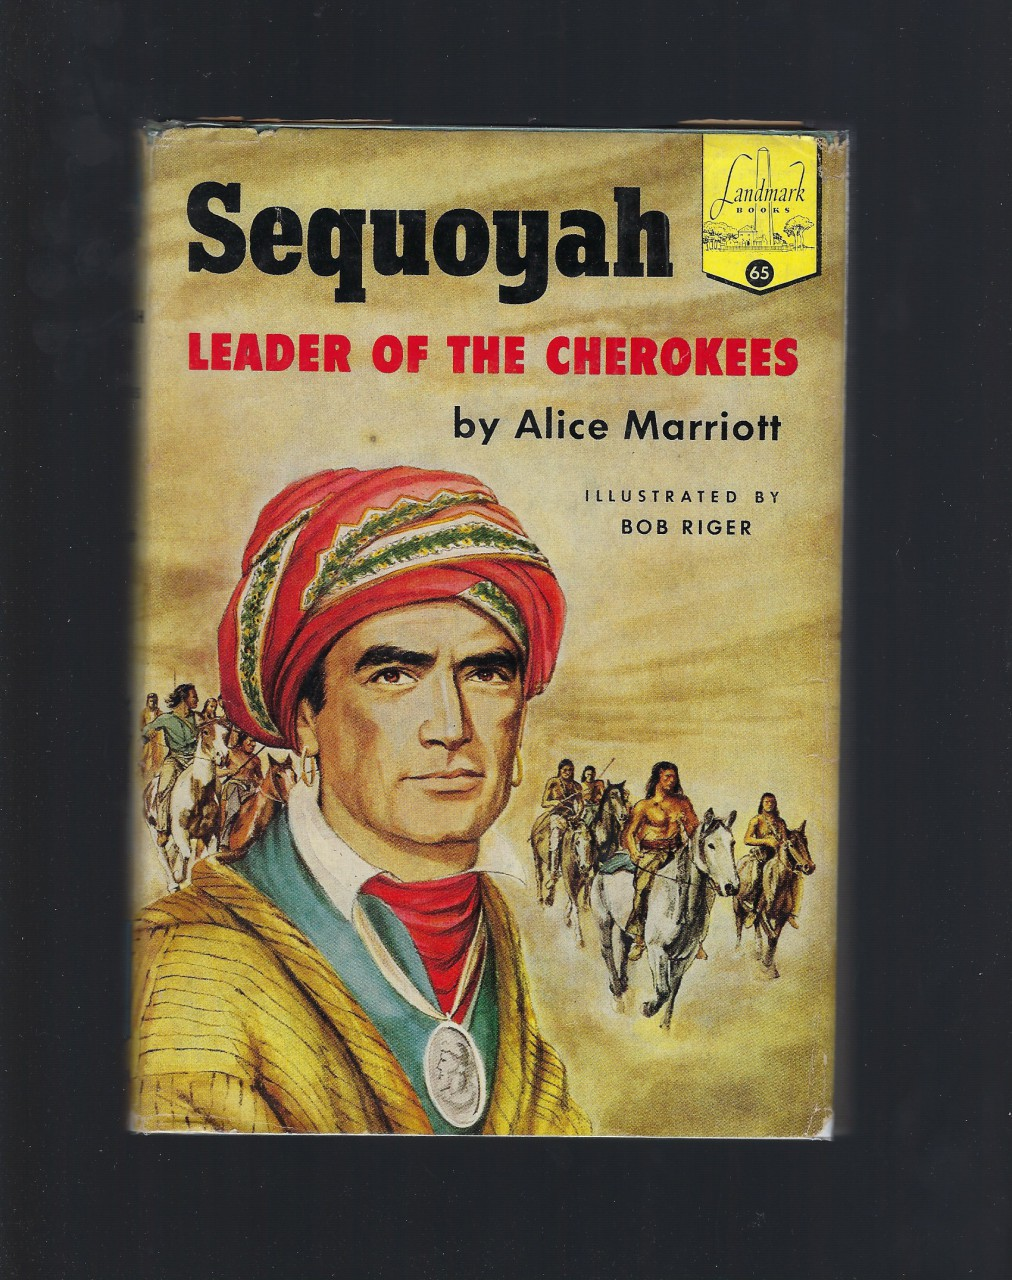 Sequoyah Leader of the Cherokees Landmark #65 w Author Letter HB/DJ, Alice Marriott; Illustrator-Bob Riger